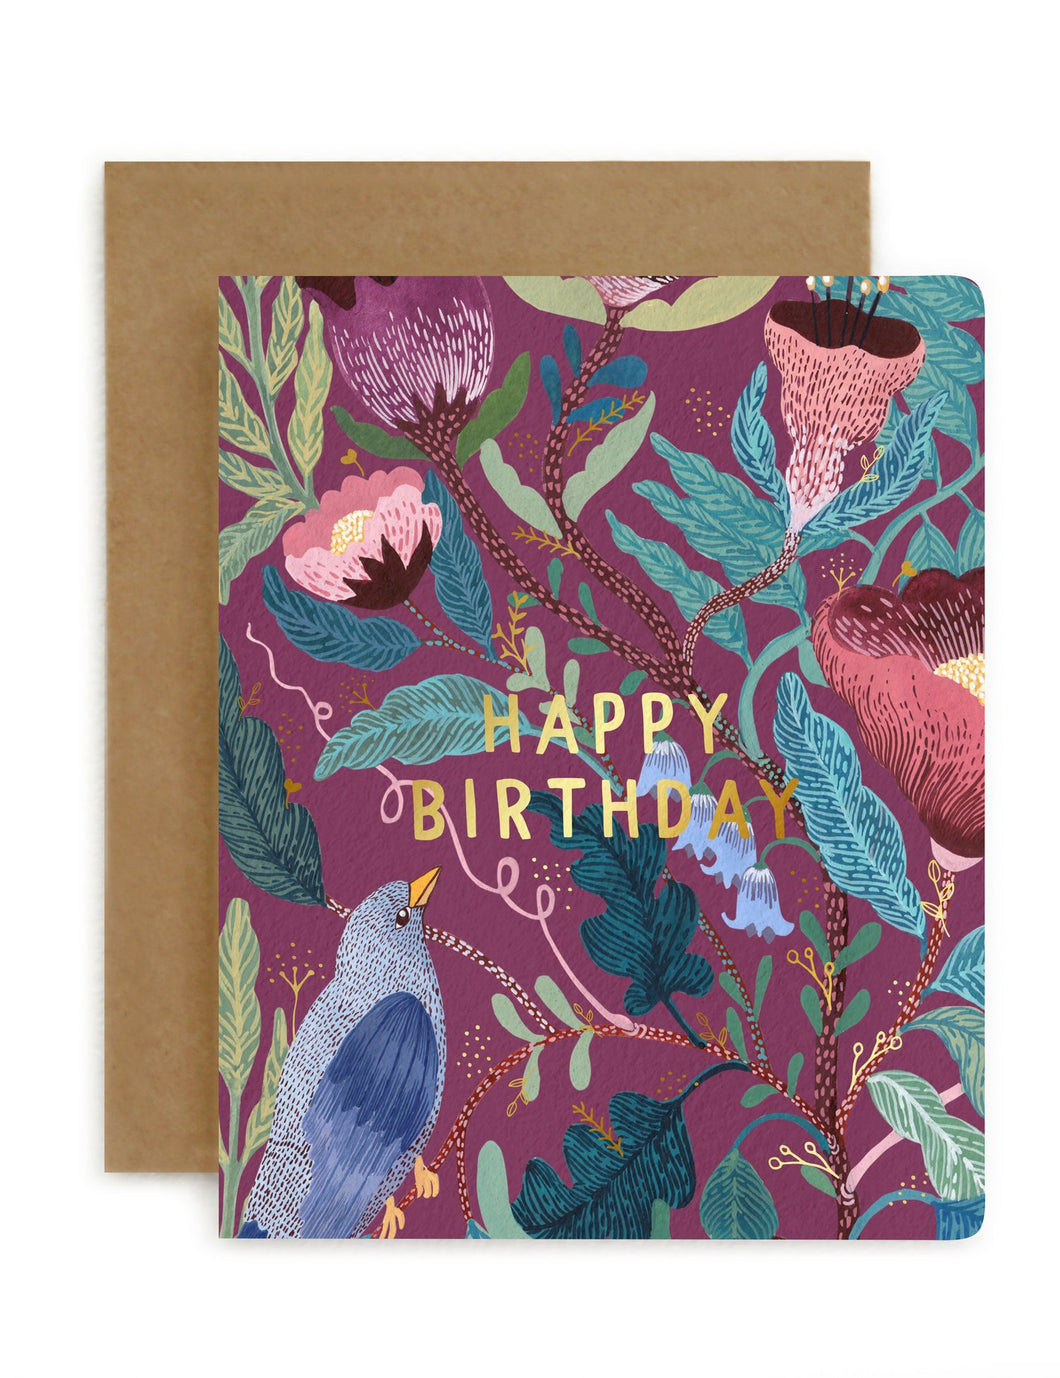 Bespoke Letterpress - Blomstra 'Happy Birthday'